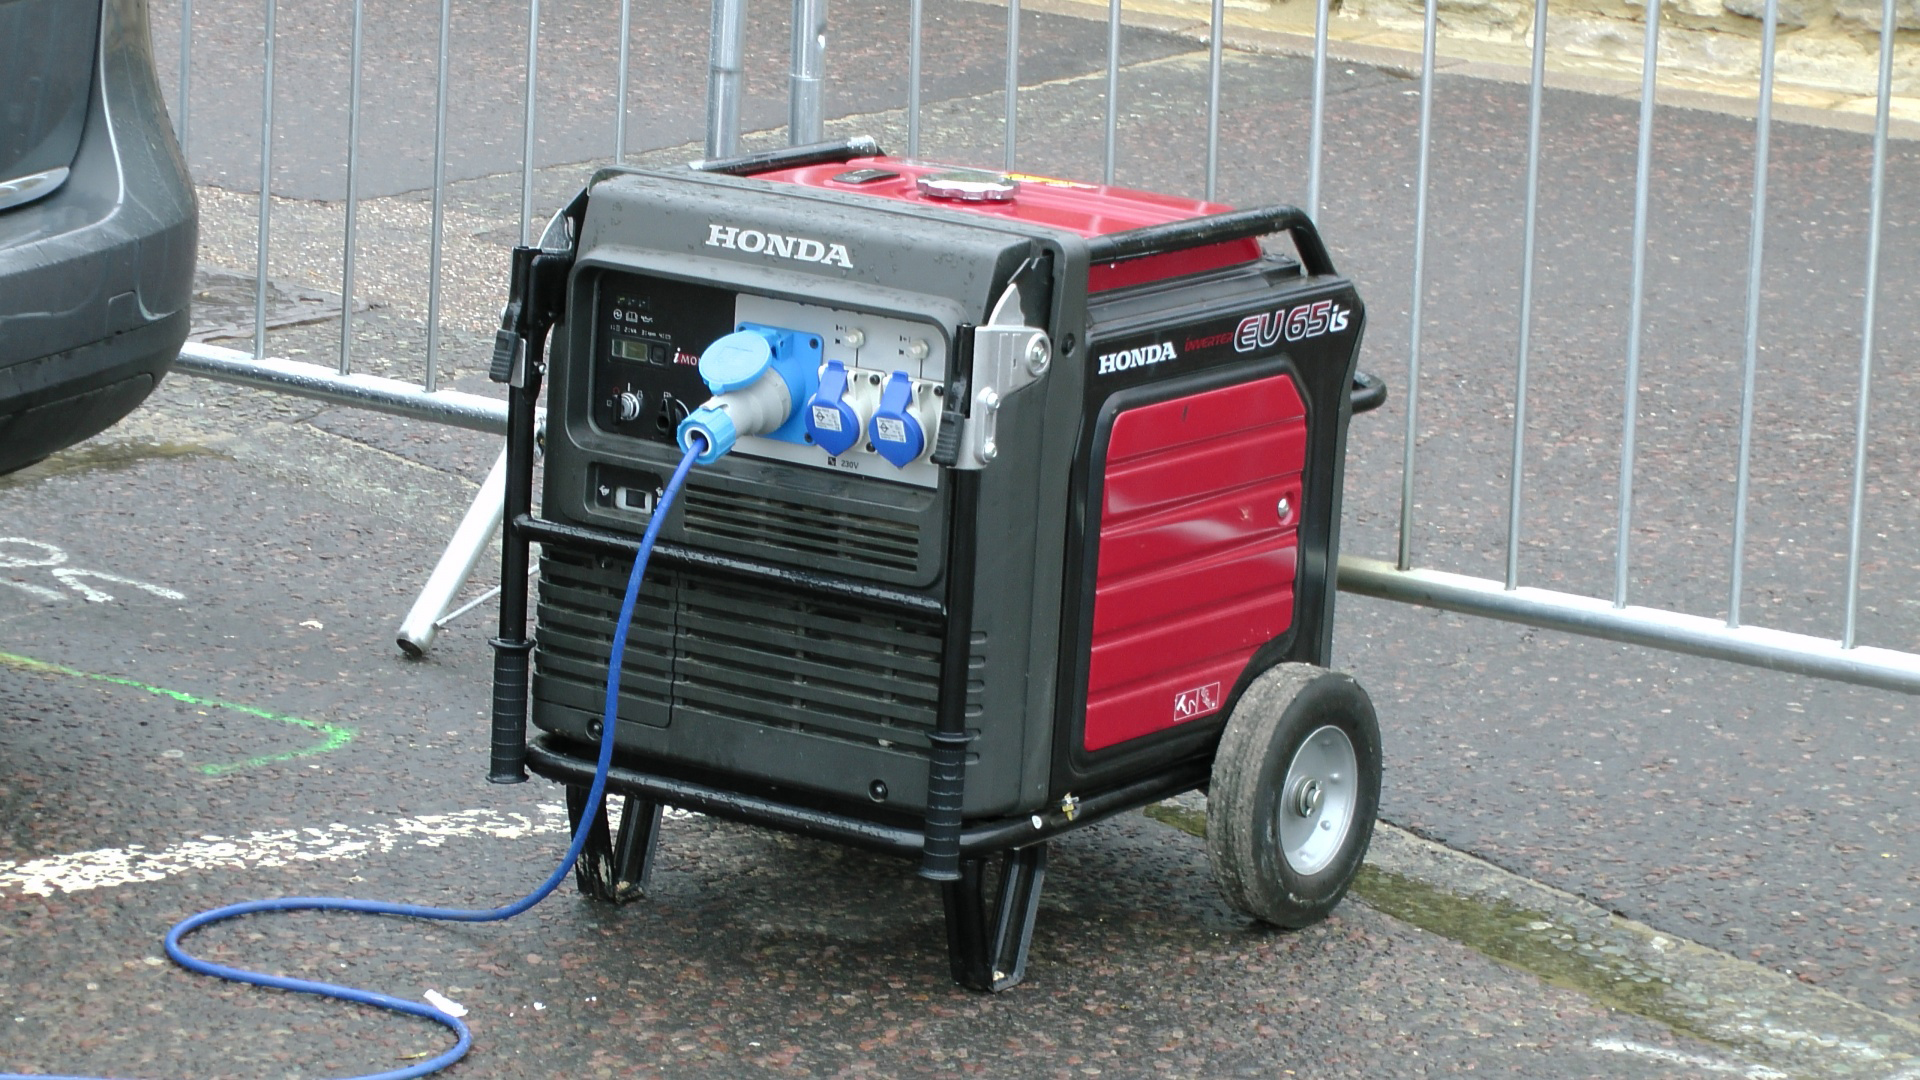 Generators should be kept dry and operated on dry surfaces.